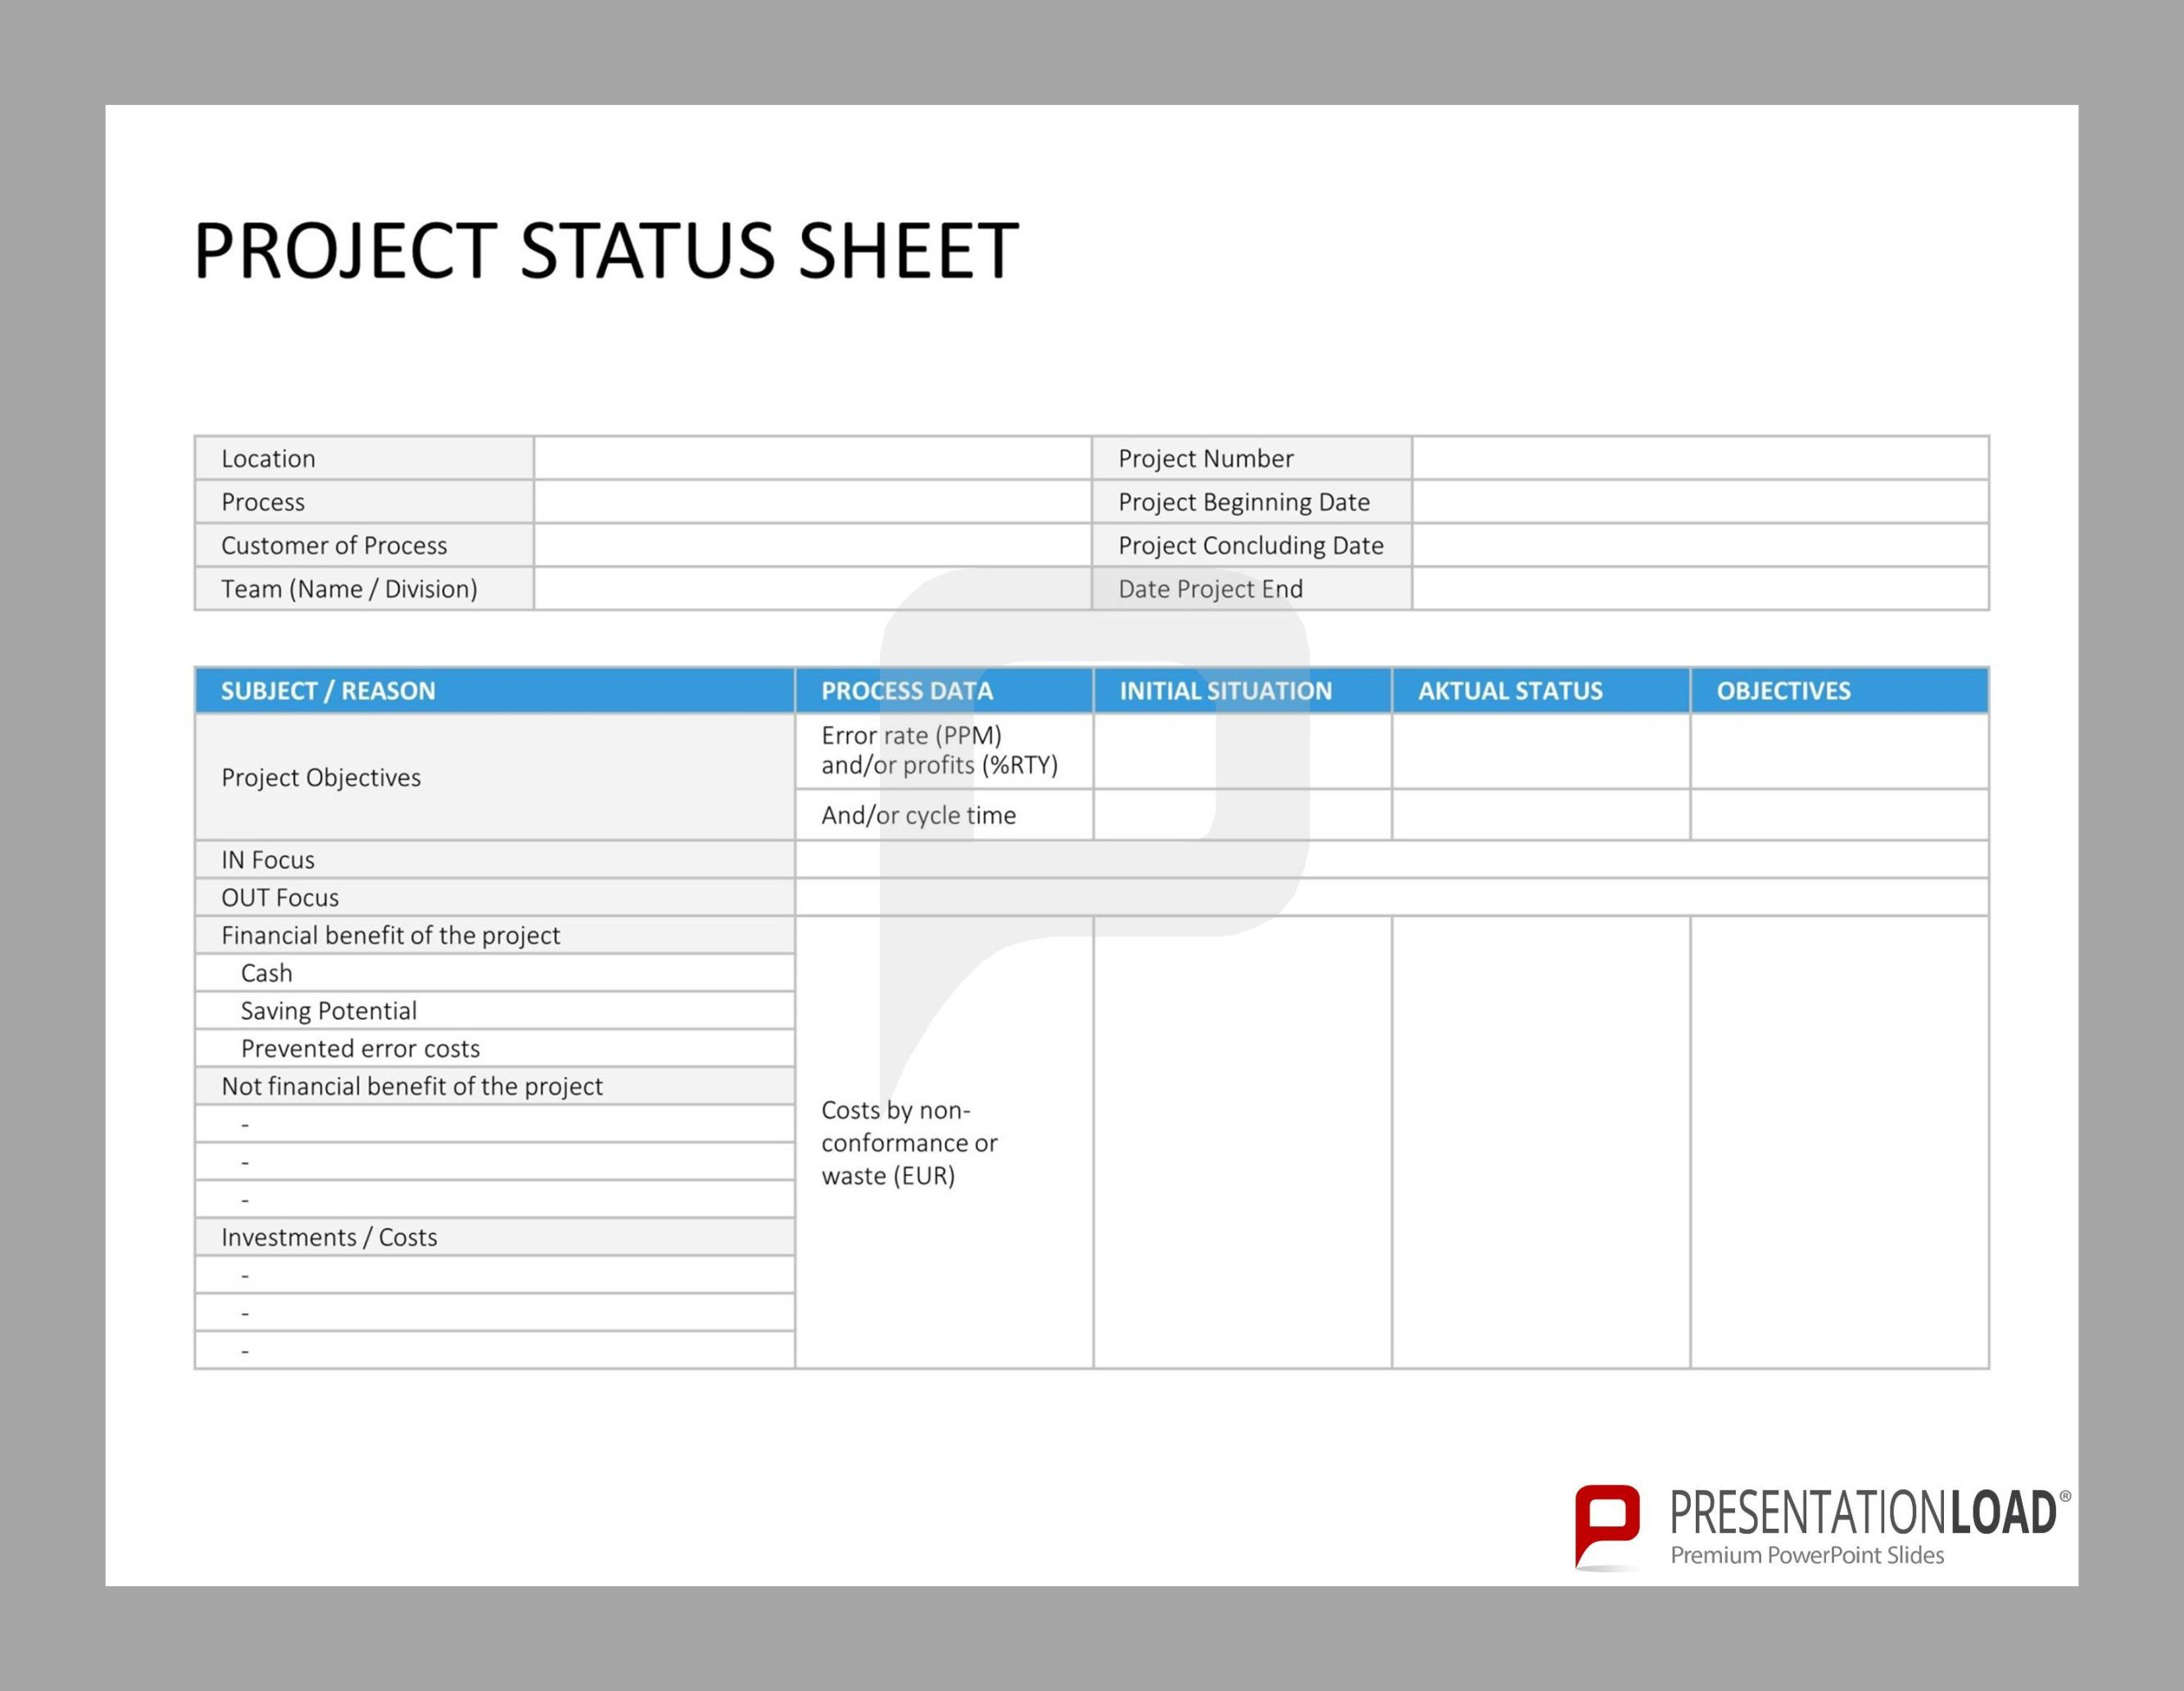 Project Status Sheet   Six Sigma U2013 PowerPoint Templates @ Http://www